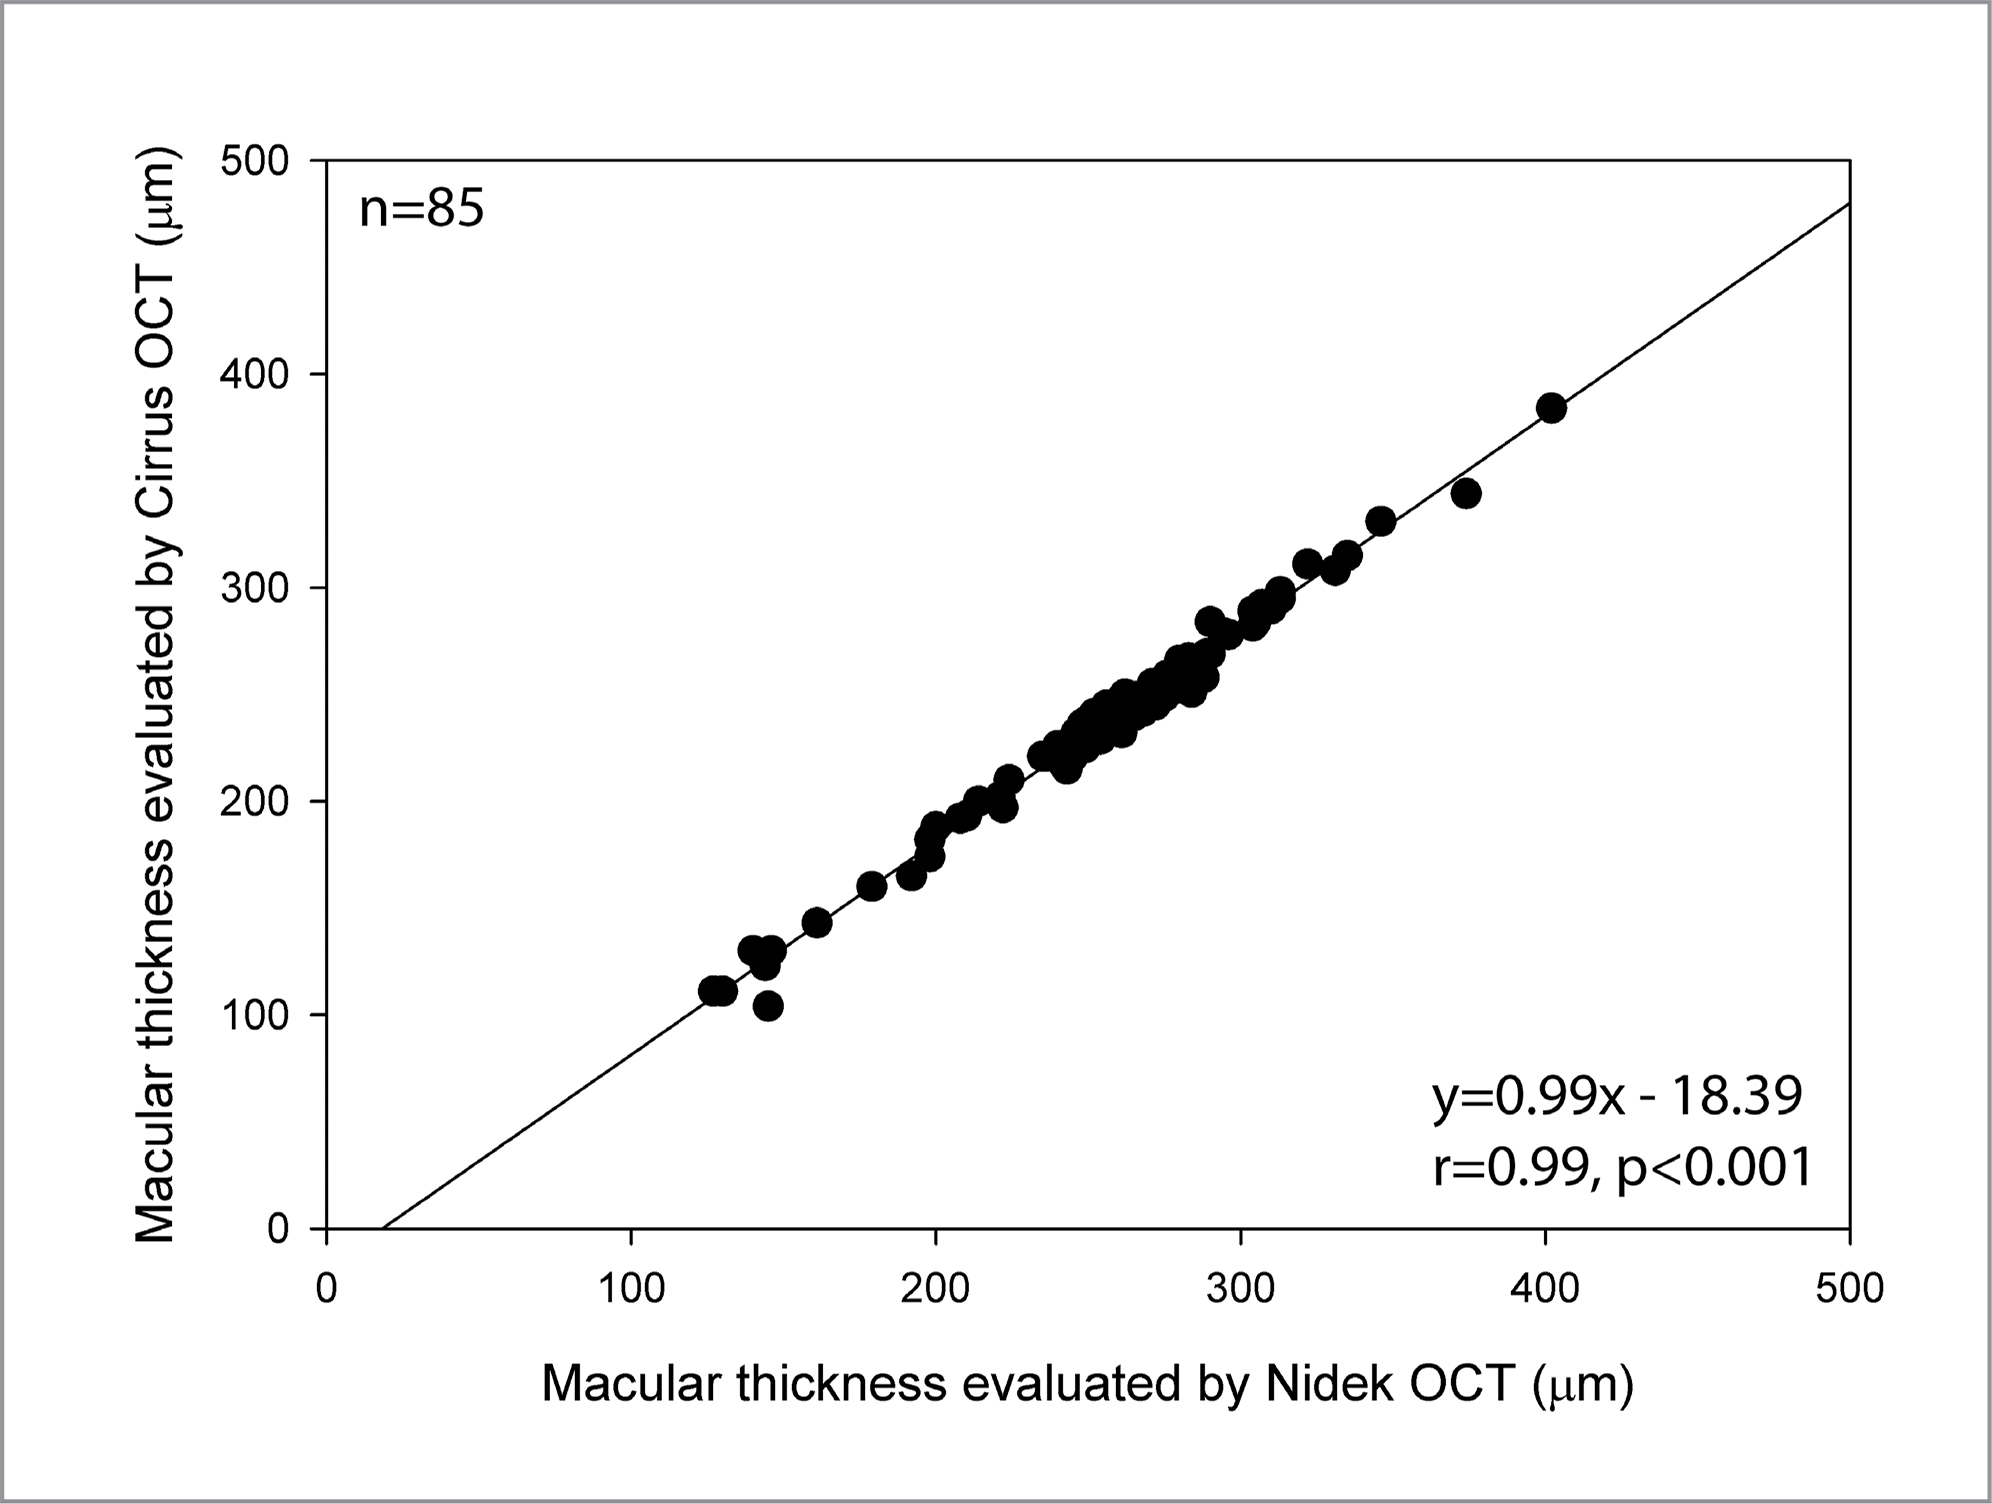 Regression plot of macular thickness measured with the Nidek optical coherence (OCT) device and the Zeiss Cirrus OCT device in eyes with dry age-related macular degeneration. Differences in Y intercepts reflect differences in the measurement algorithms.